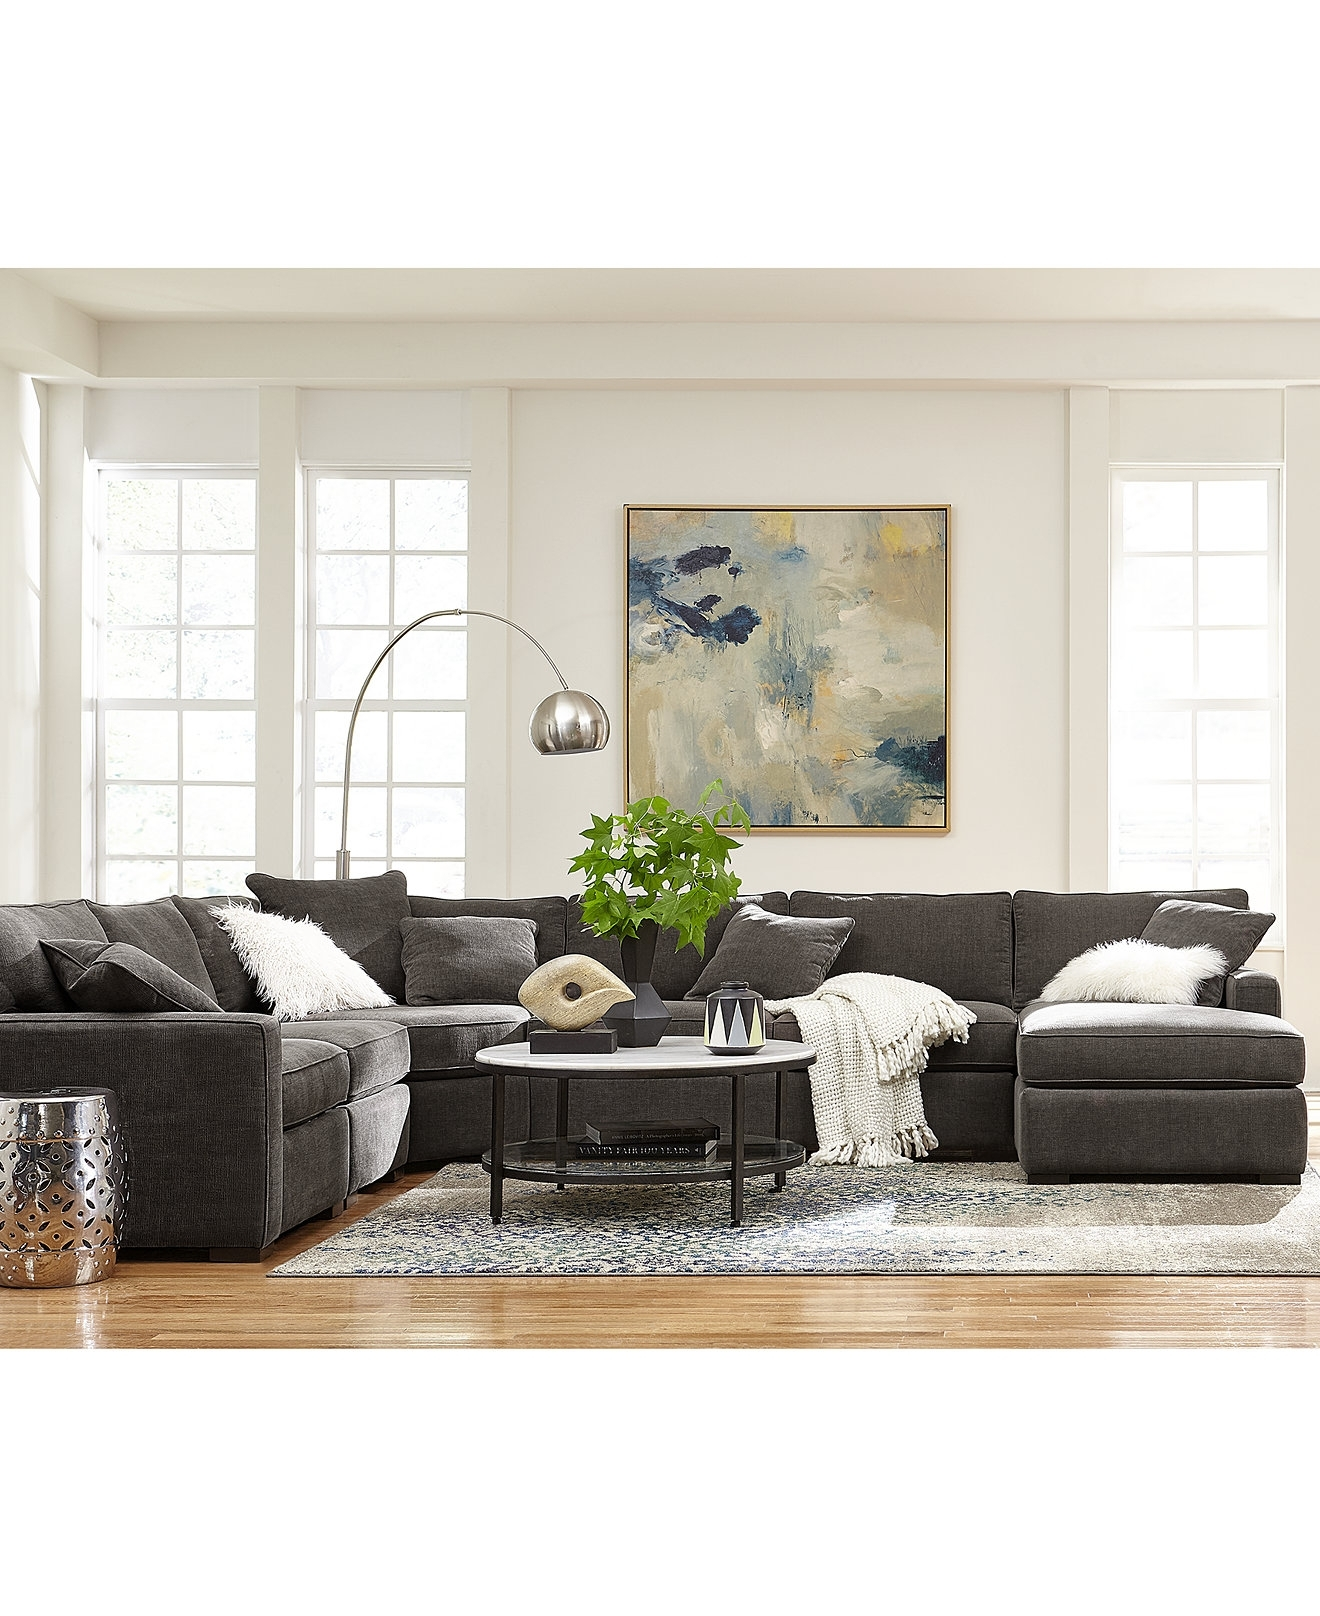 10 Best Collection Of Off White Leather Sofas: 10 Best Collection Of Sectional Sofas Under 700